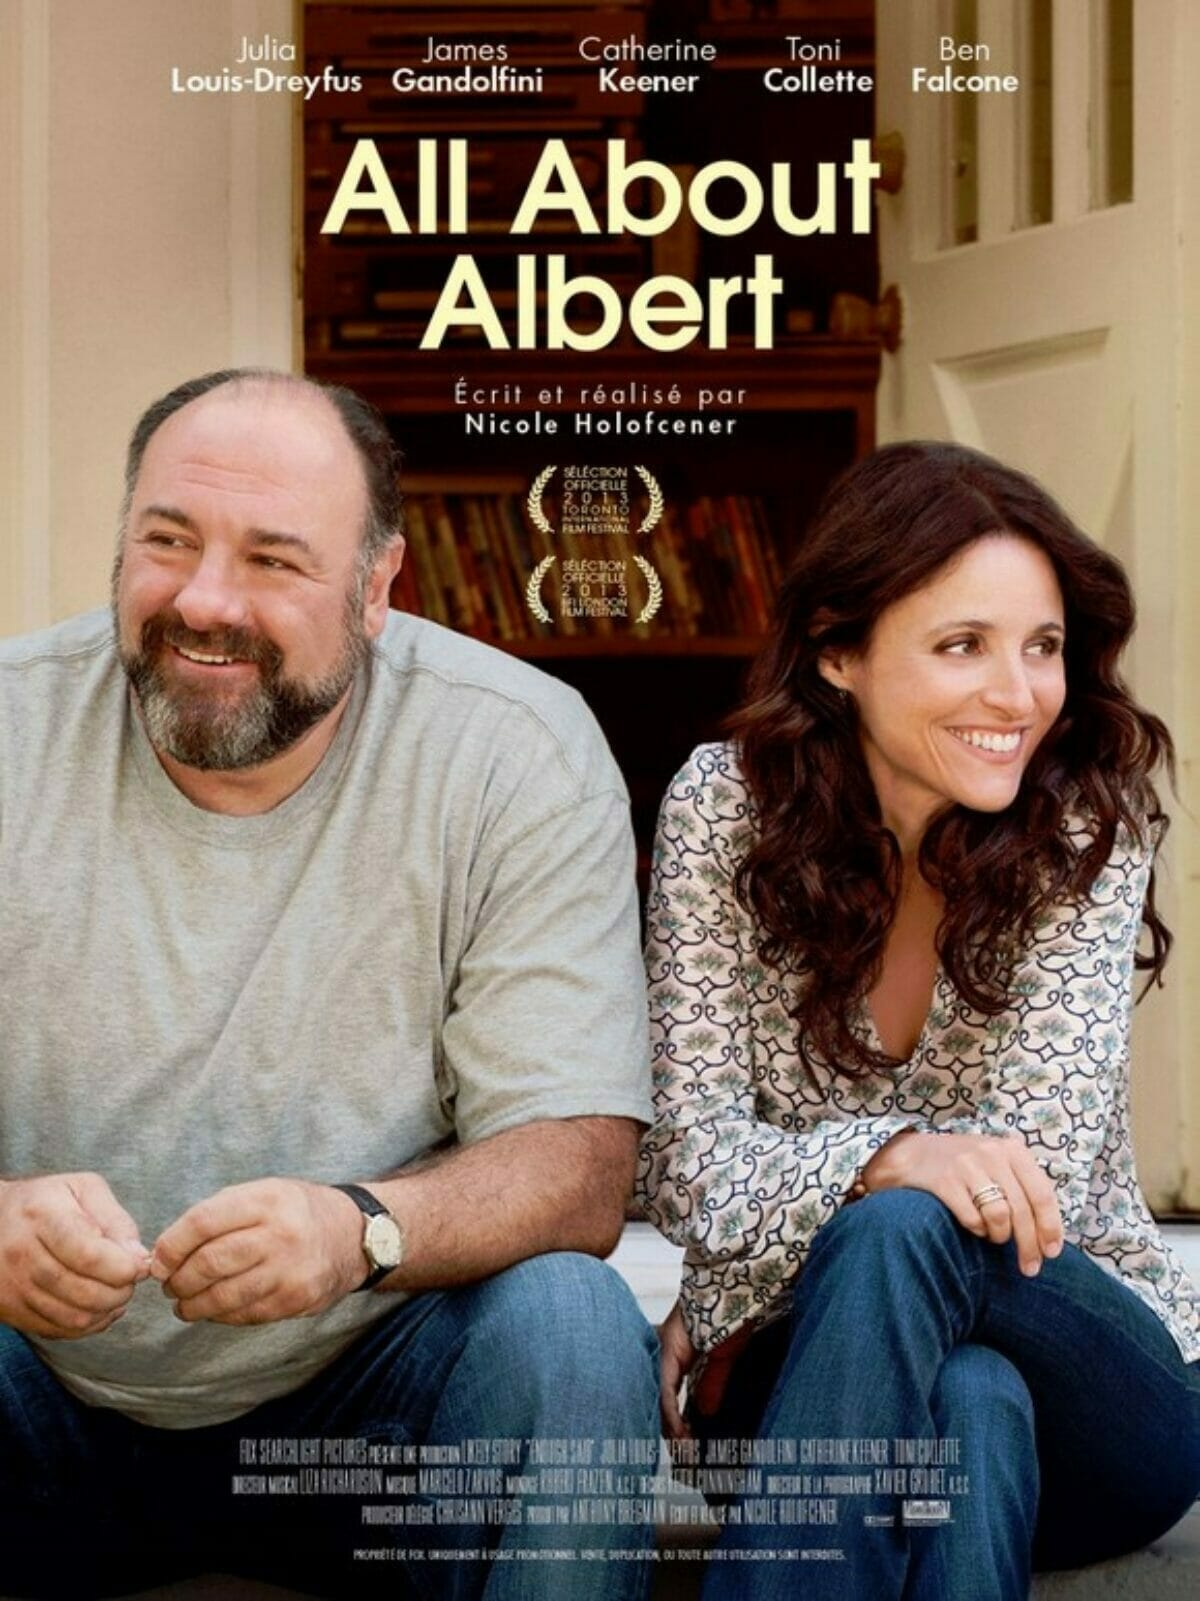 All-about-Alber-enough-said-affiche-France